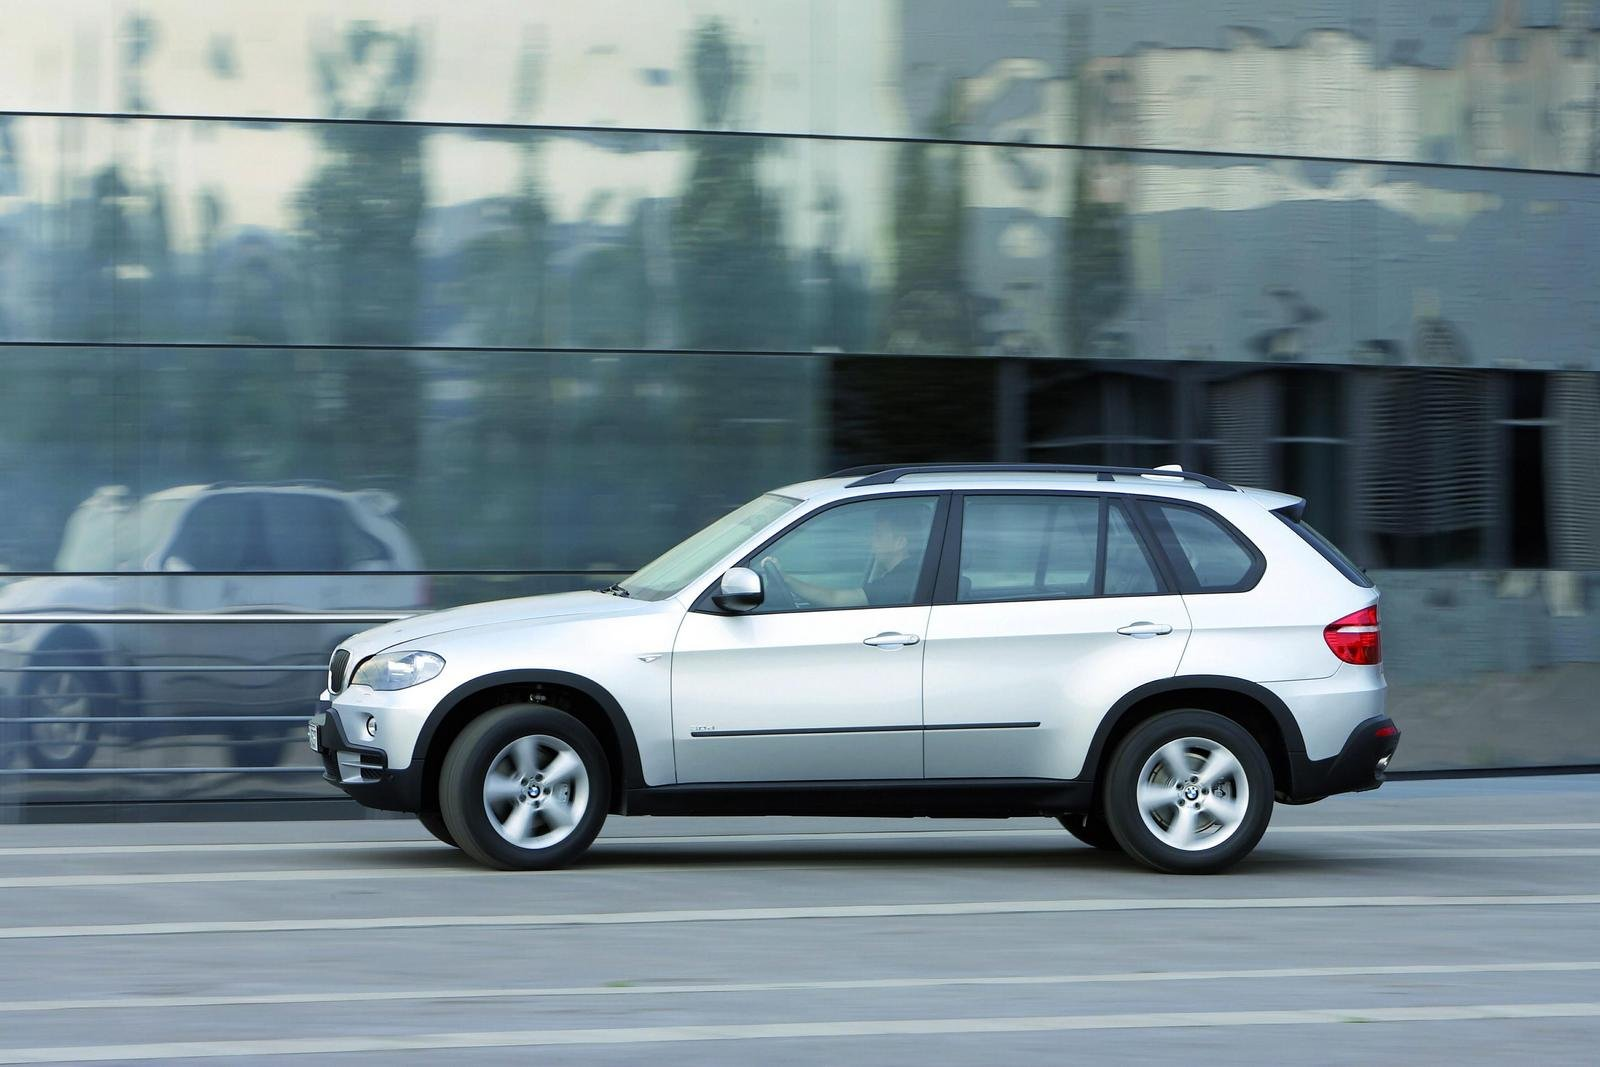 2008 bmw x5 picture 195852 car review top speed. Black Bedroom Furniture Sets. Home Design Ideas